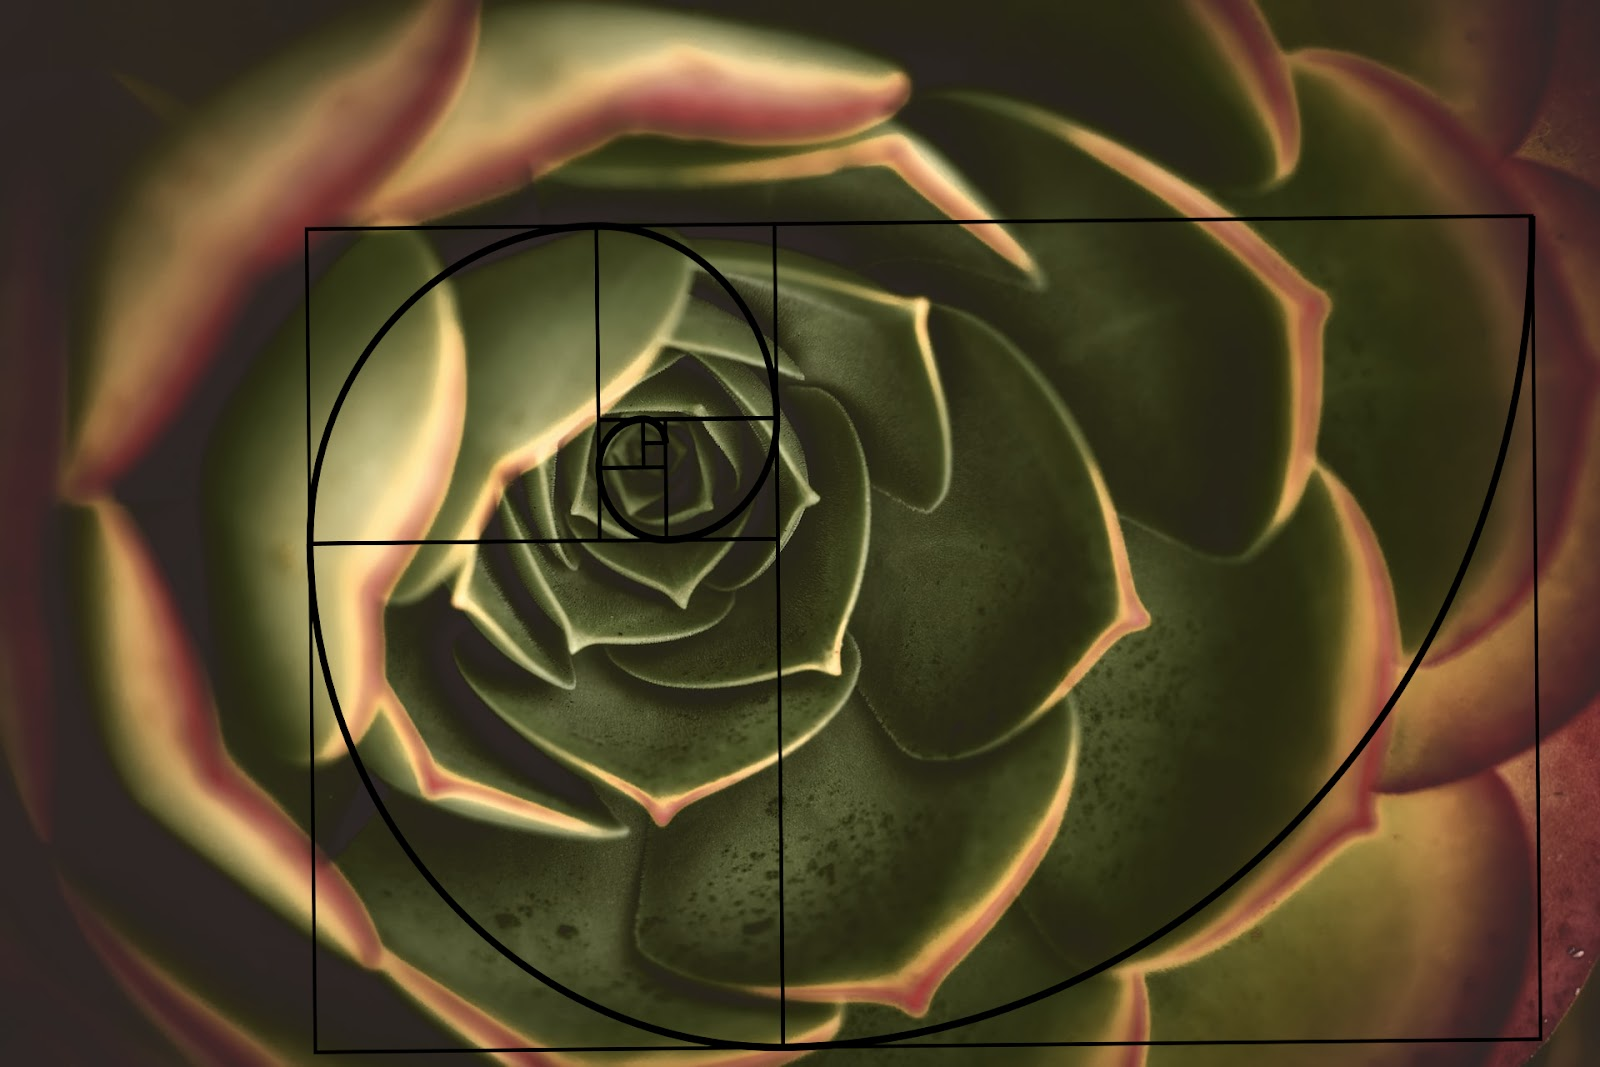 Fibonacci spiral as a tool for composition.